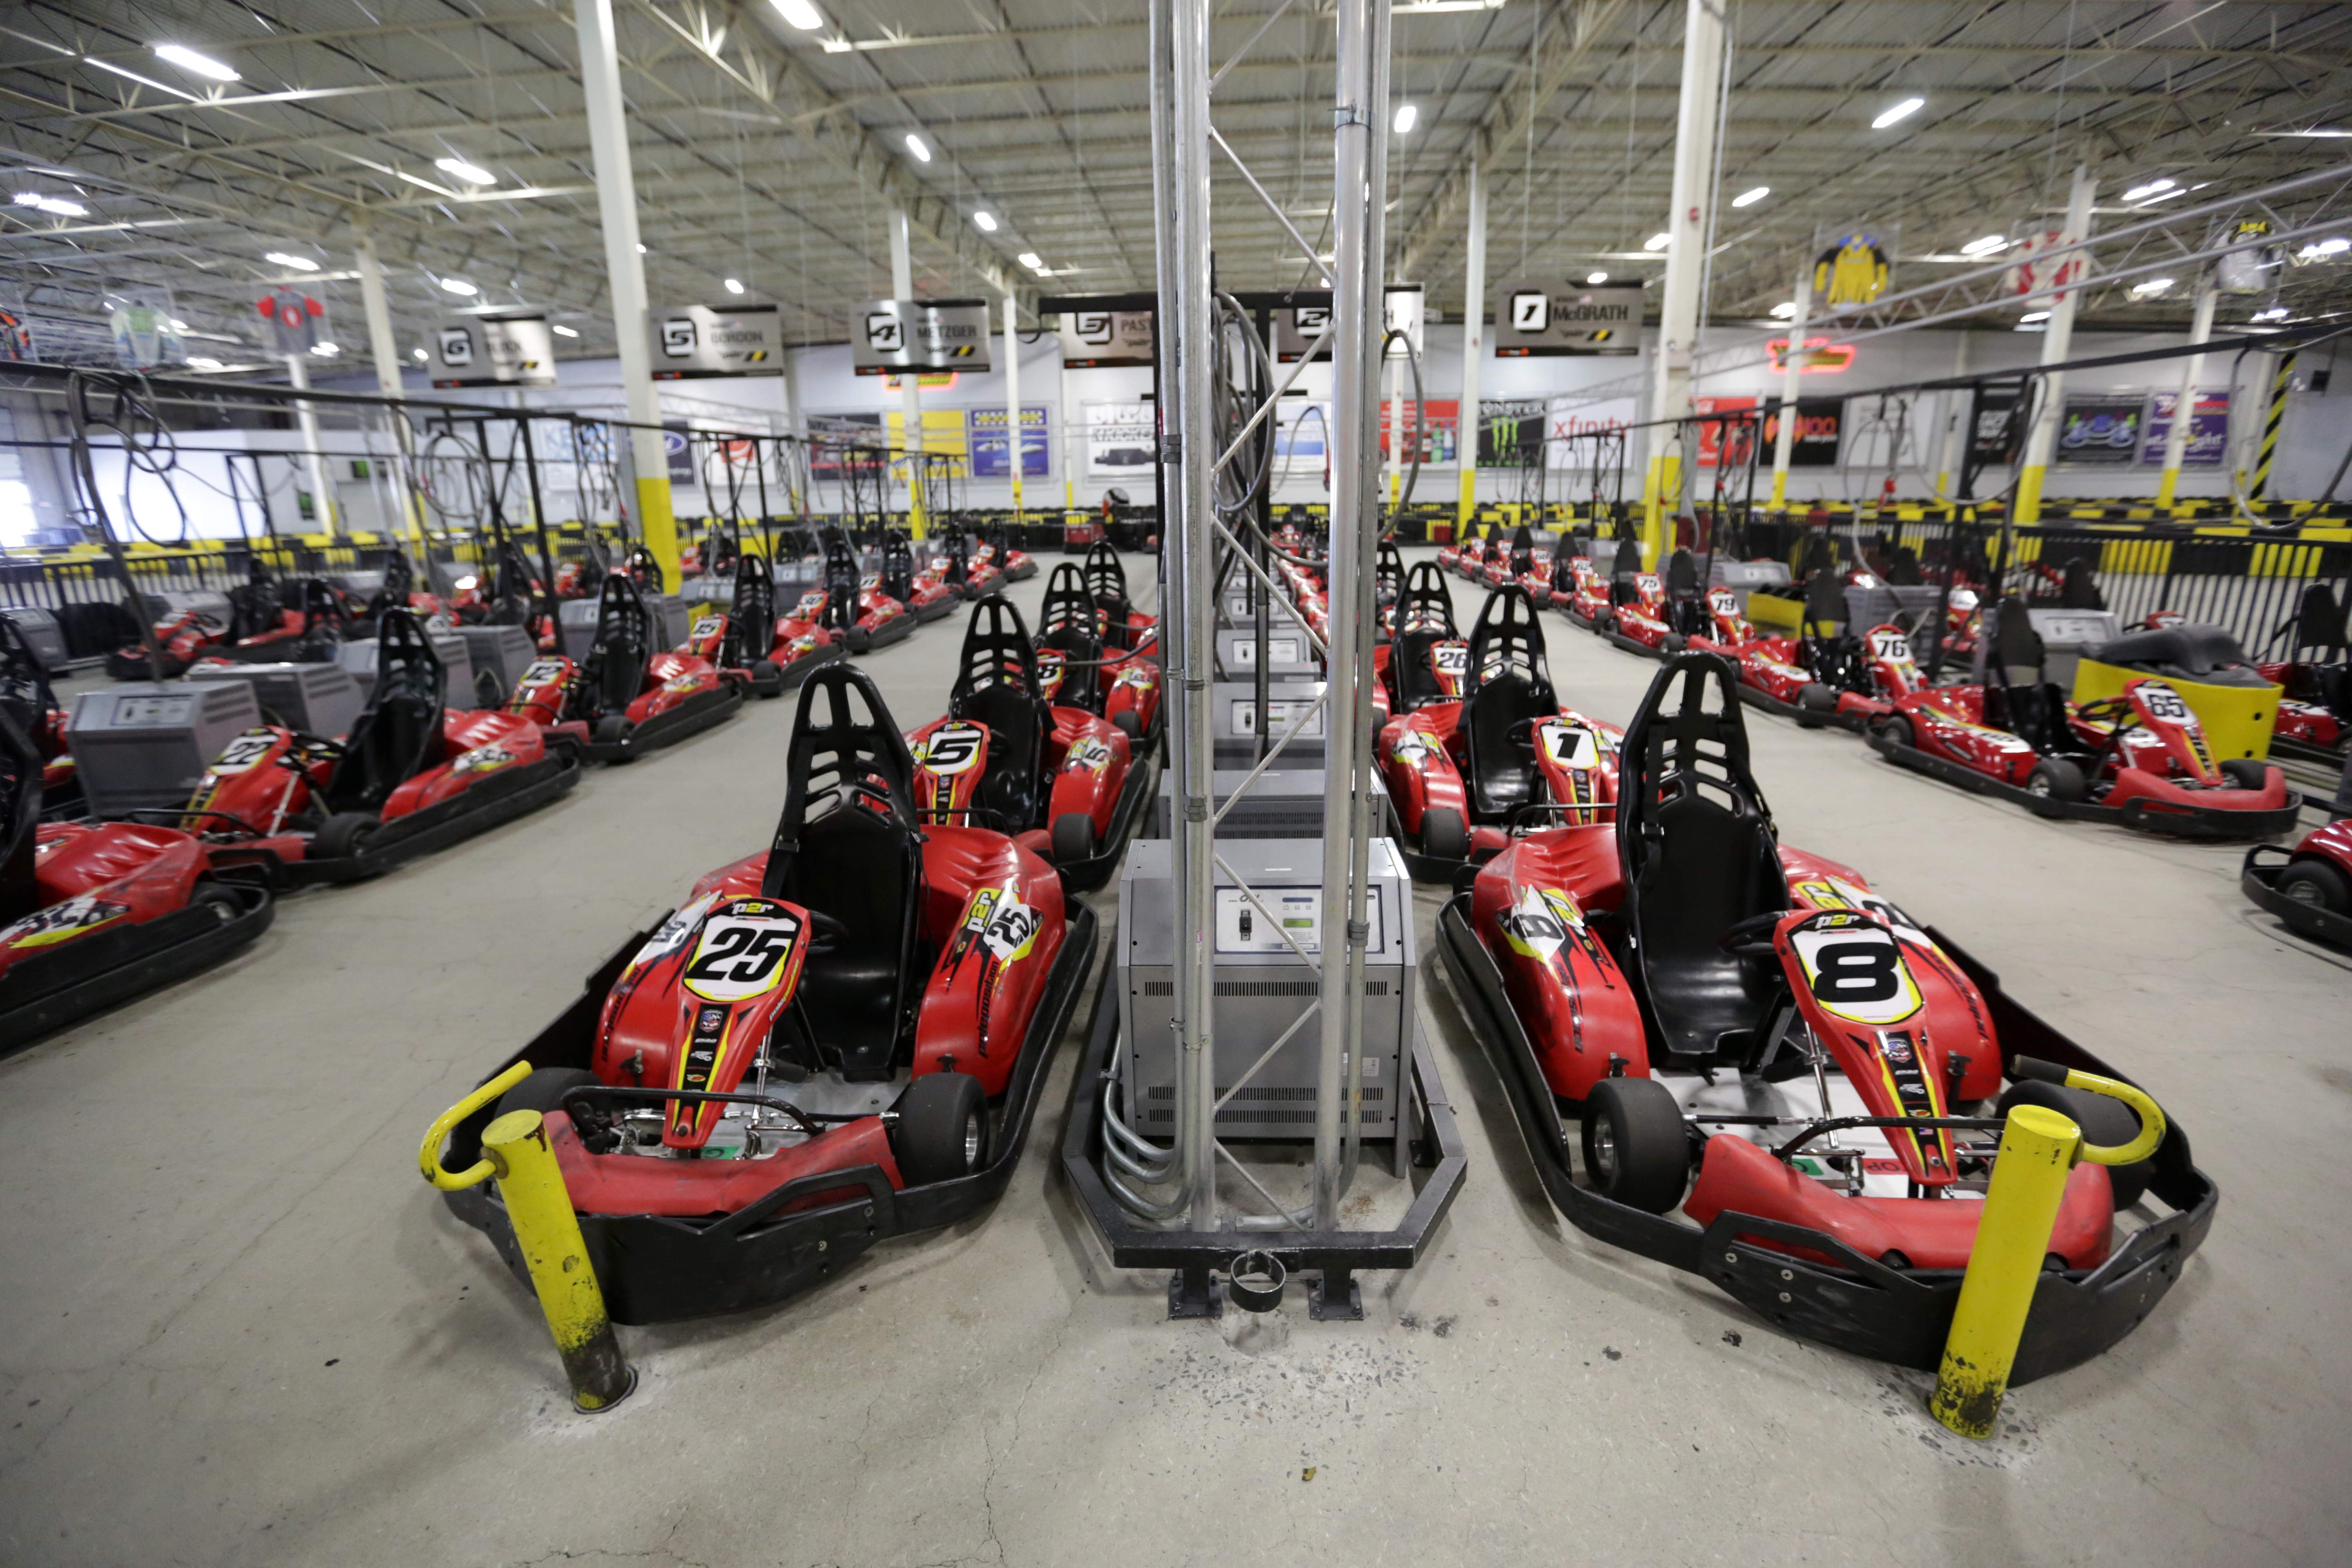 Pole Position Raceway offers an abundance of race cars at its Jersey City location.